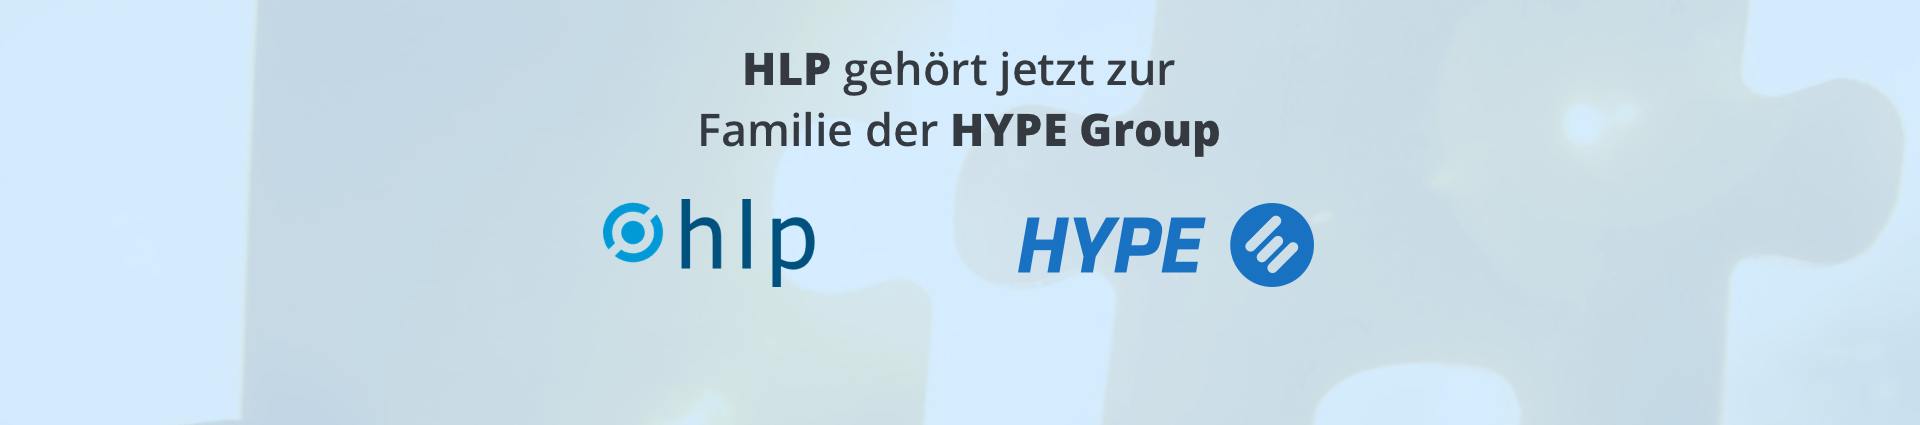 Hype HLP Merger Banner